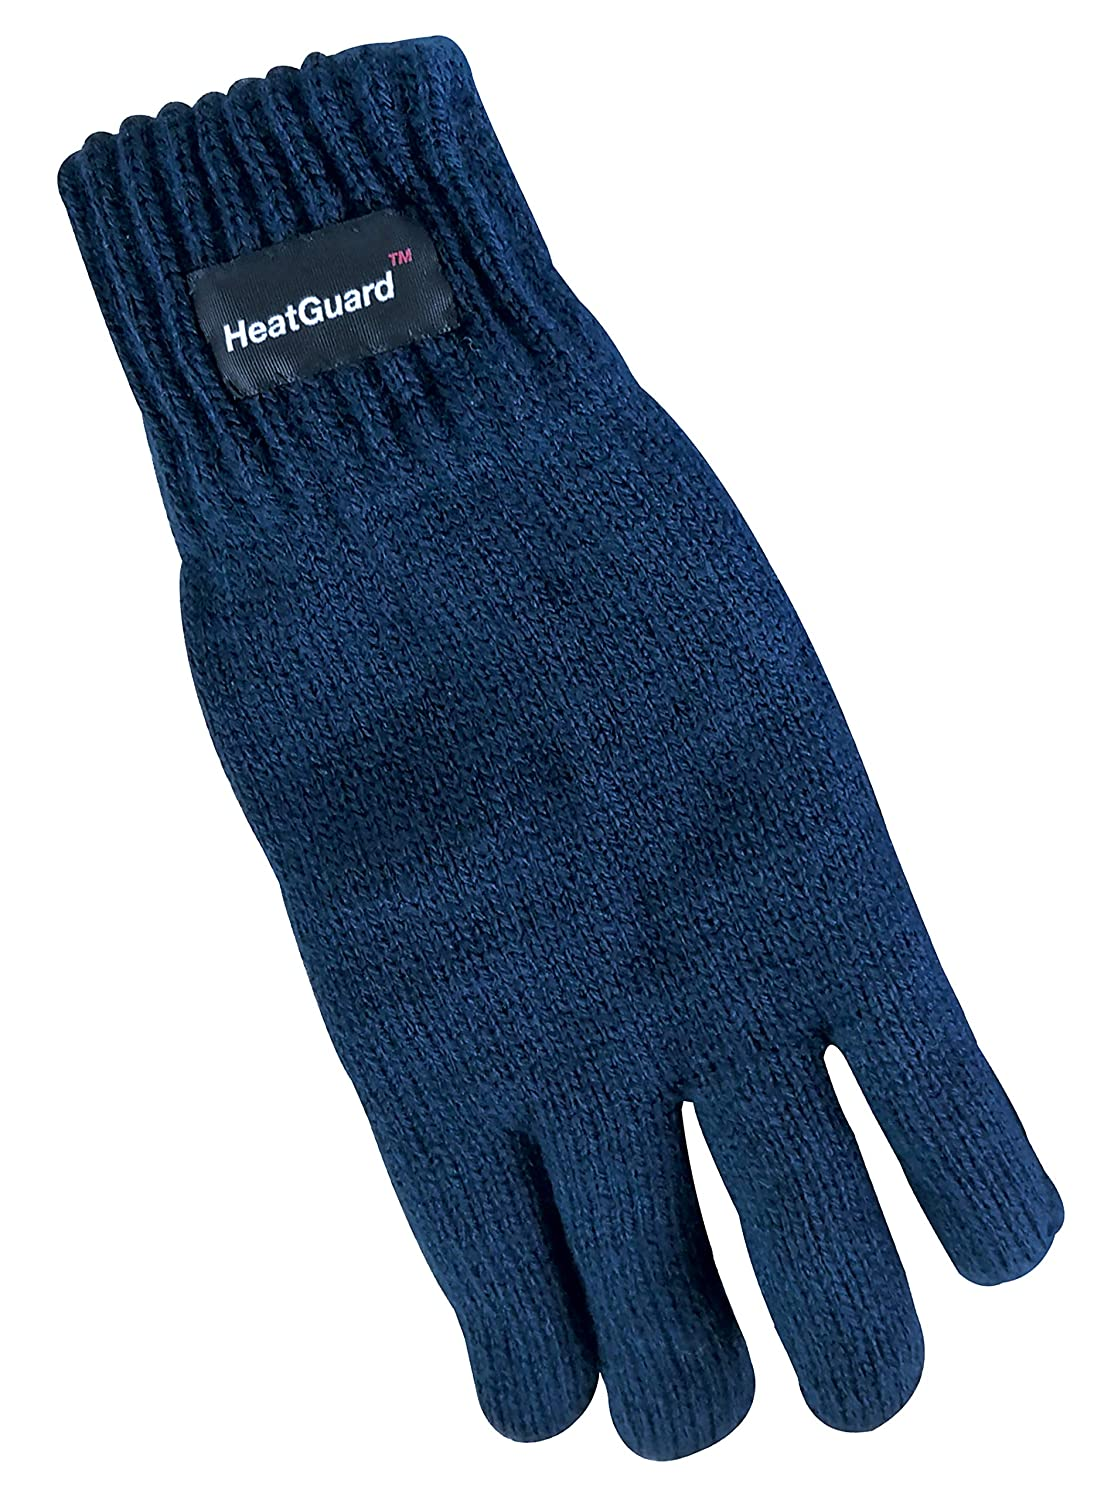 Boys Kids Thinsulate 3M 40 gram Thermal Insulated Winter Knit Outdoor Thin Gloves (10-11 Years, Black)